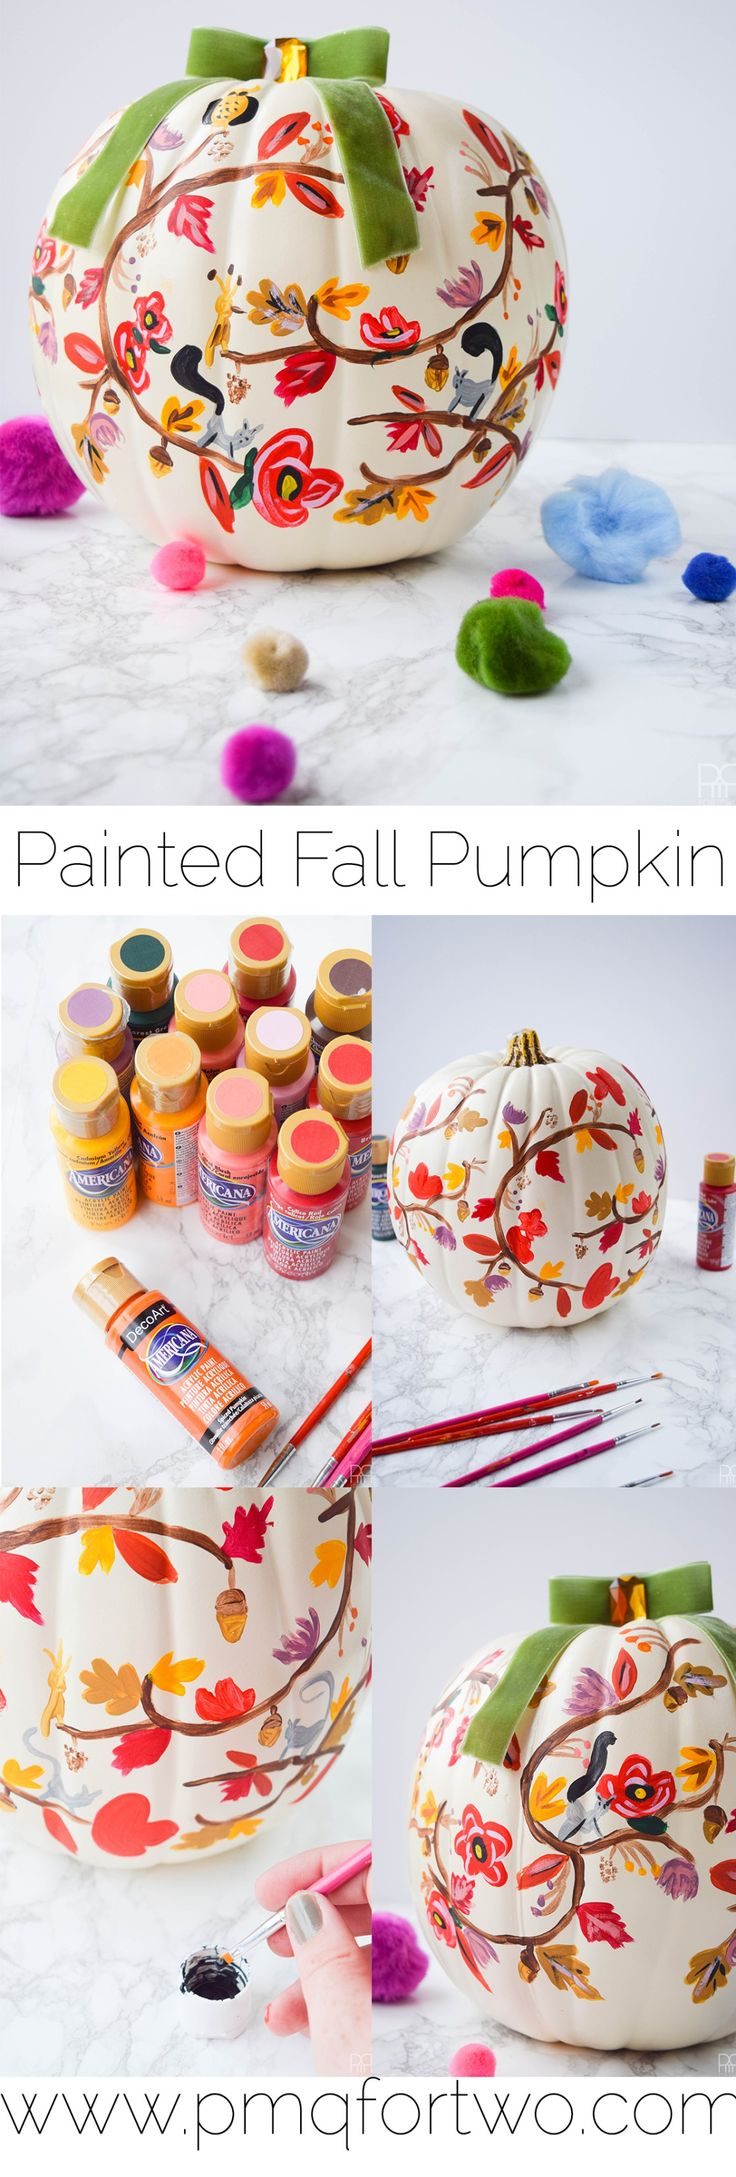 Painted Fall Pumpkin by PMQ for Two #decoartprojects